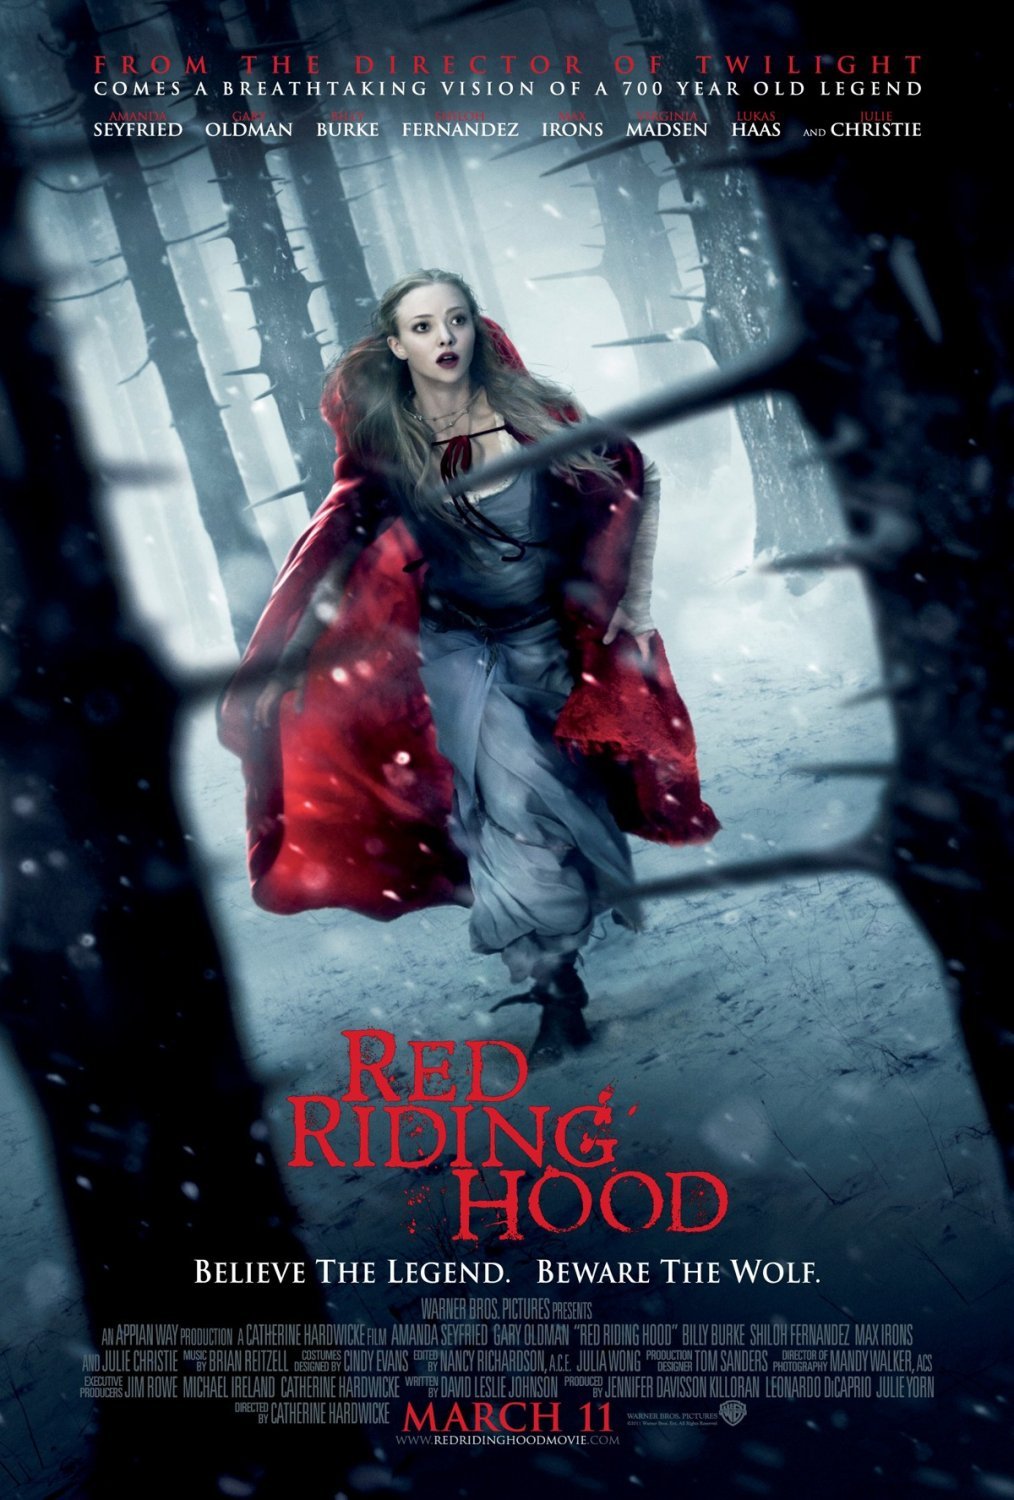 Red Riding Hood Posters.jpg